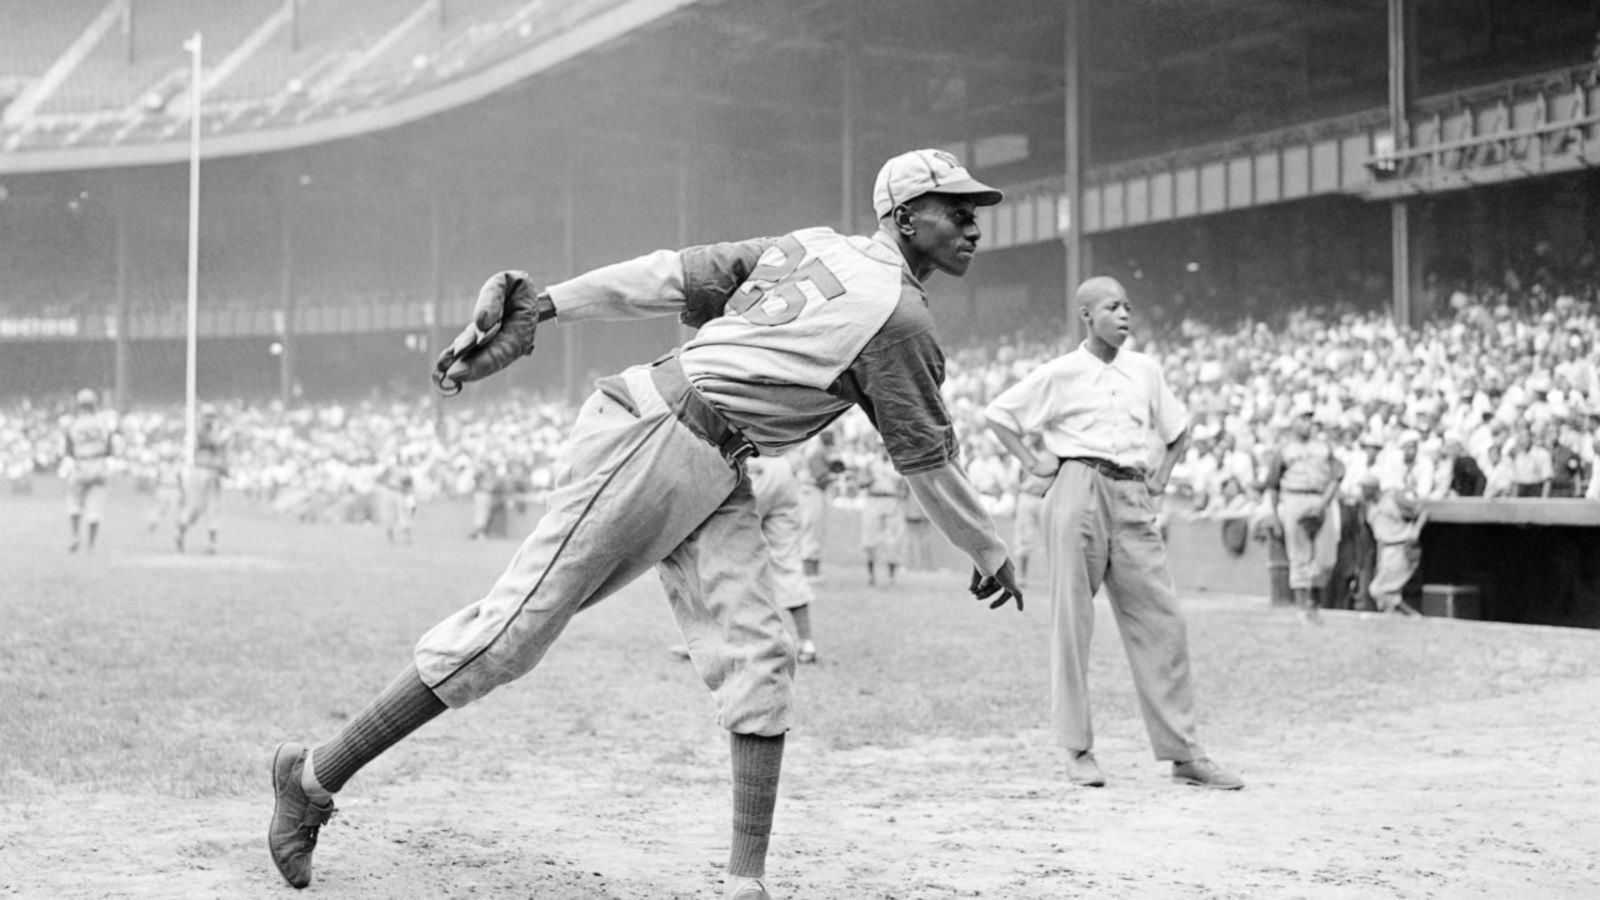 Recognizing the records and legacy of Negro League baseball